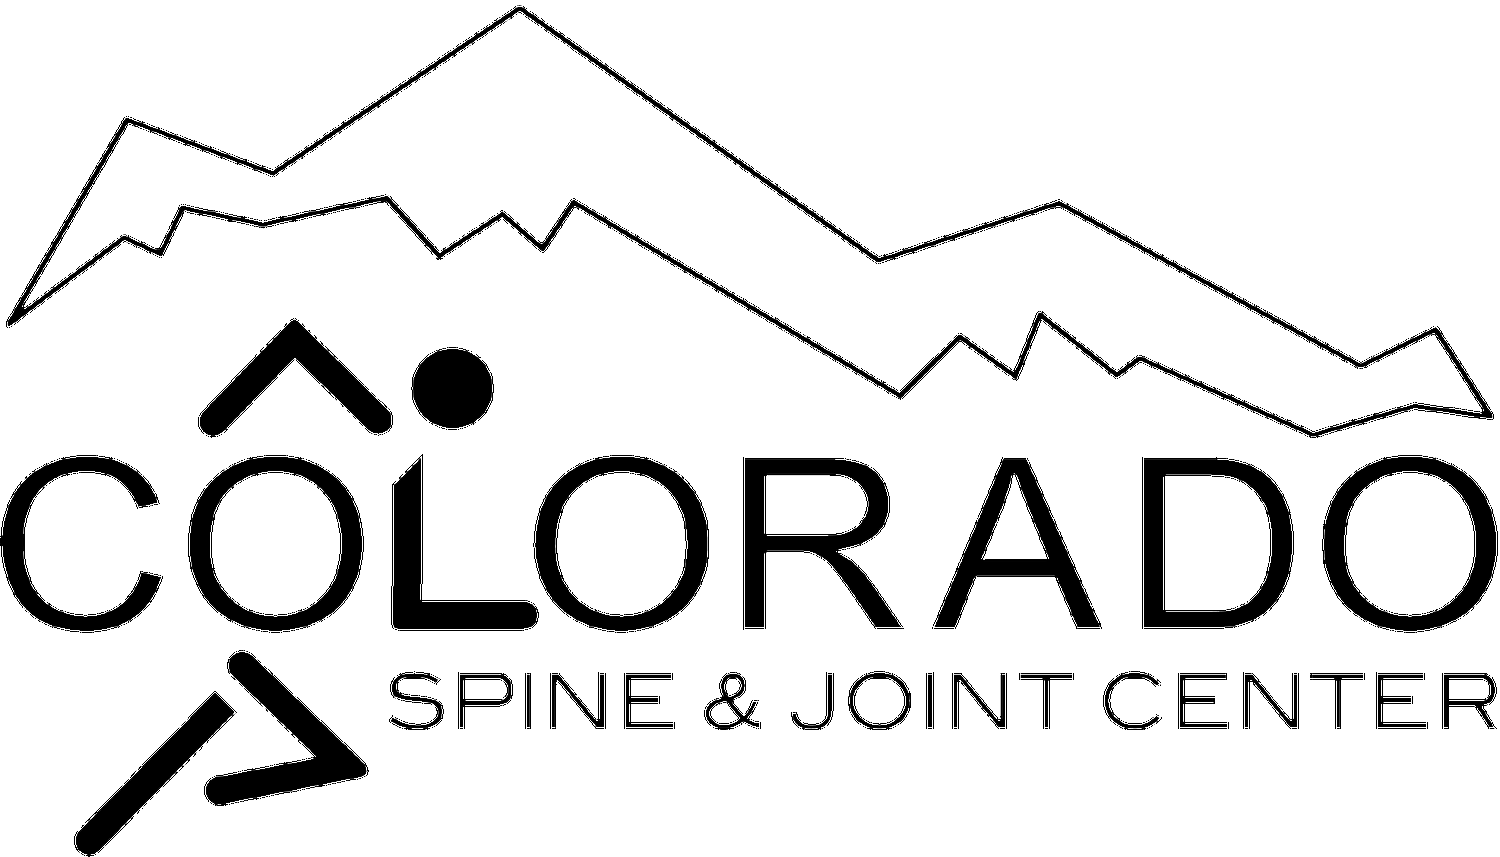 Colorado Spine & Joint Center